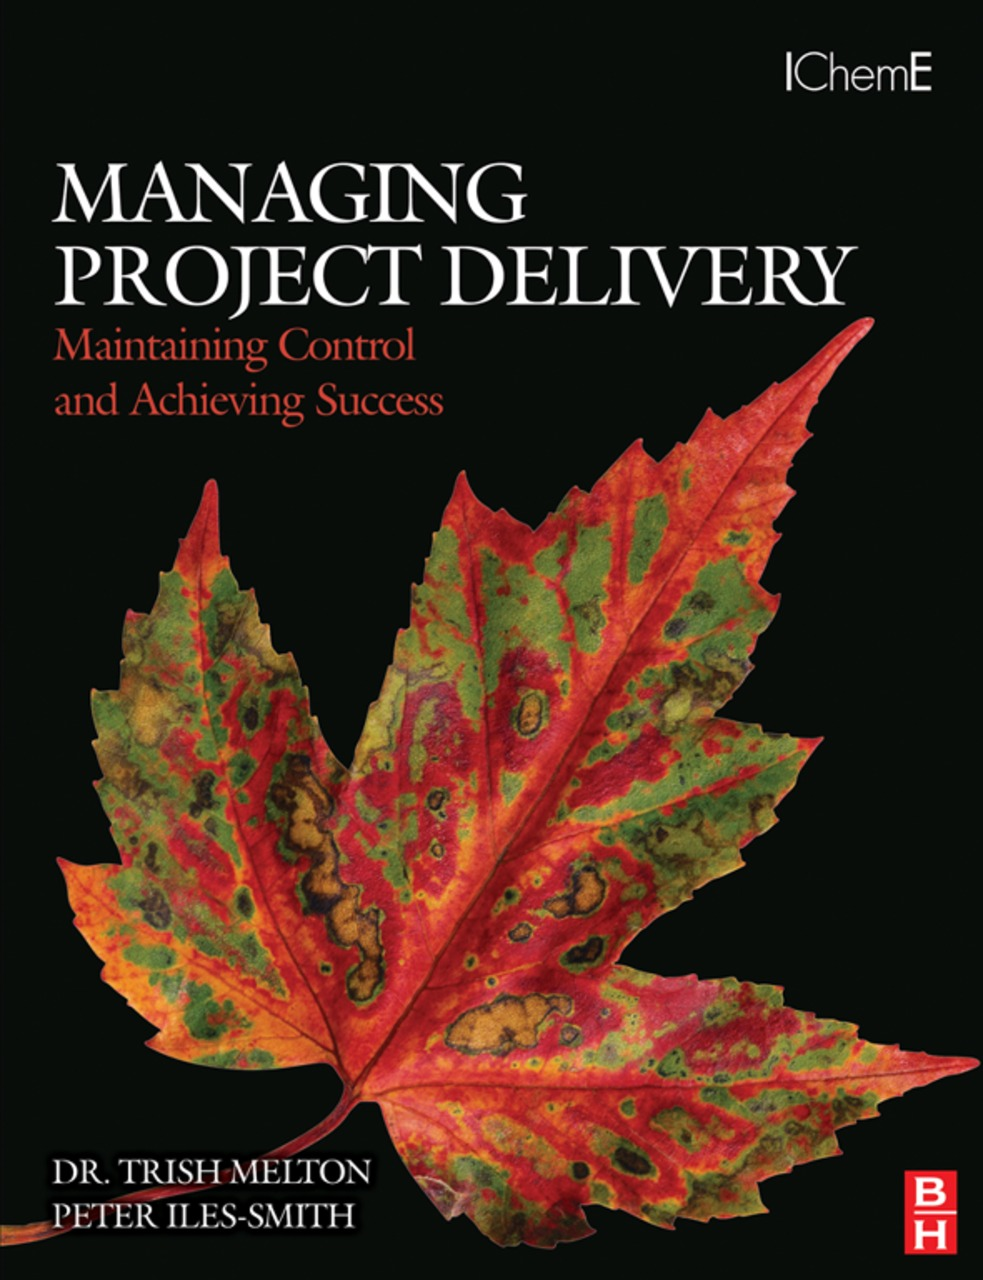 Managing Project Delivery: Maintaining Control and Achieving Success Maintaining Control and Achieving Success